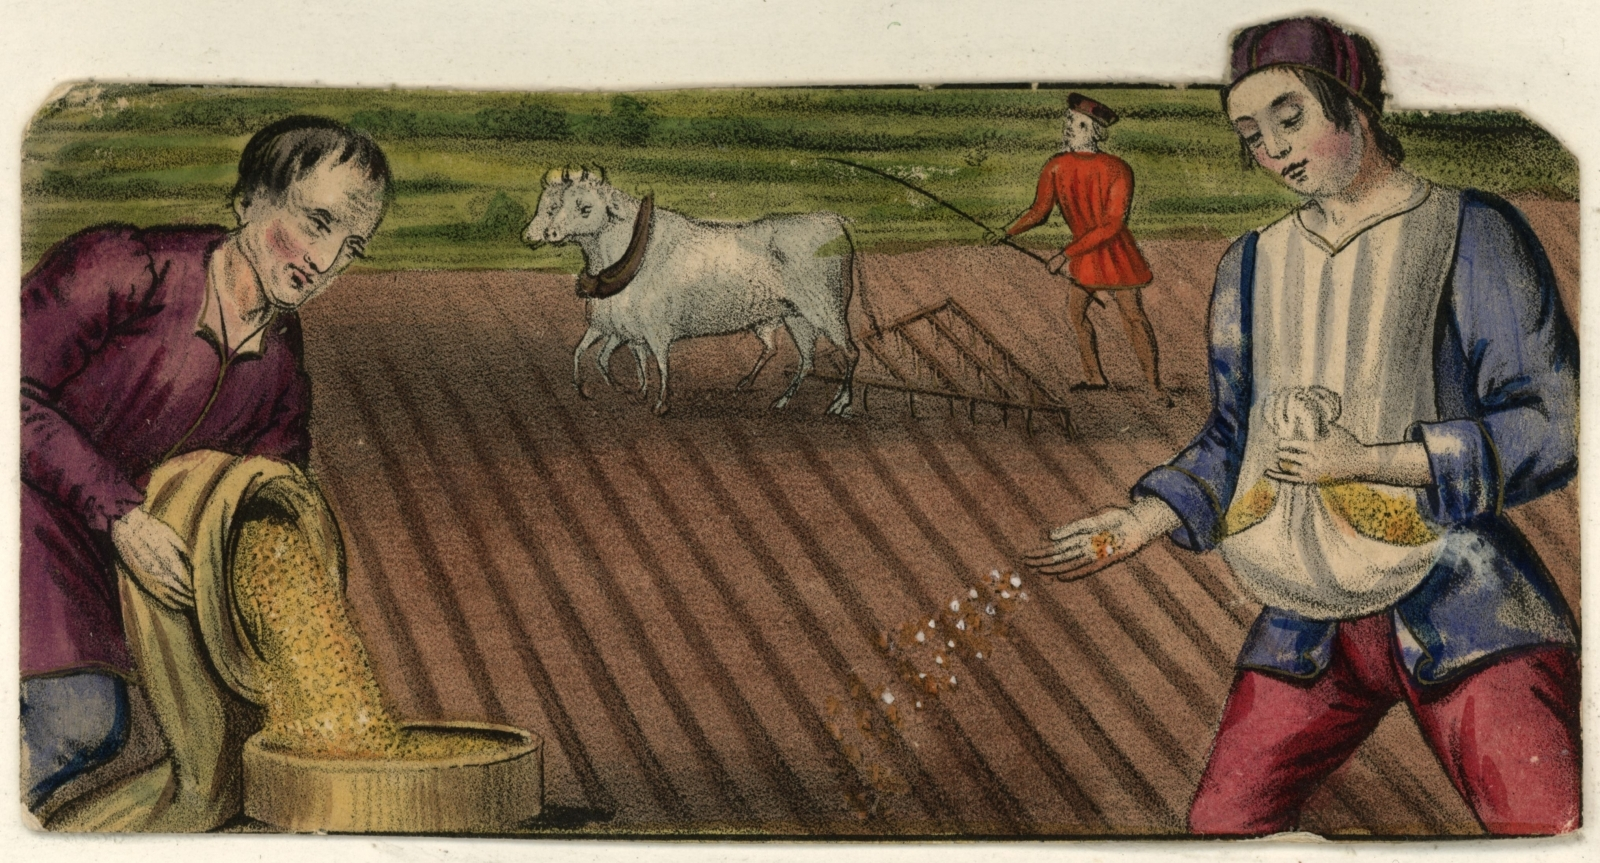 Farming in the Middle Ages